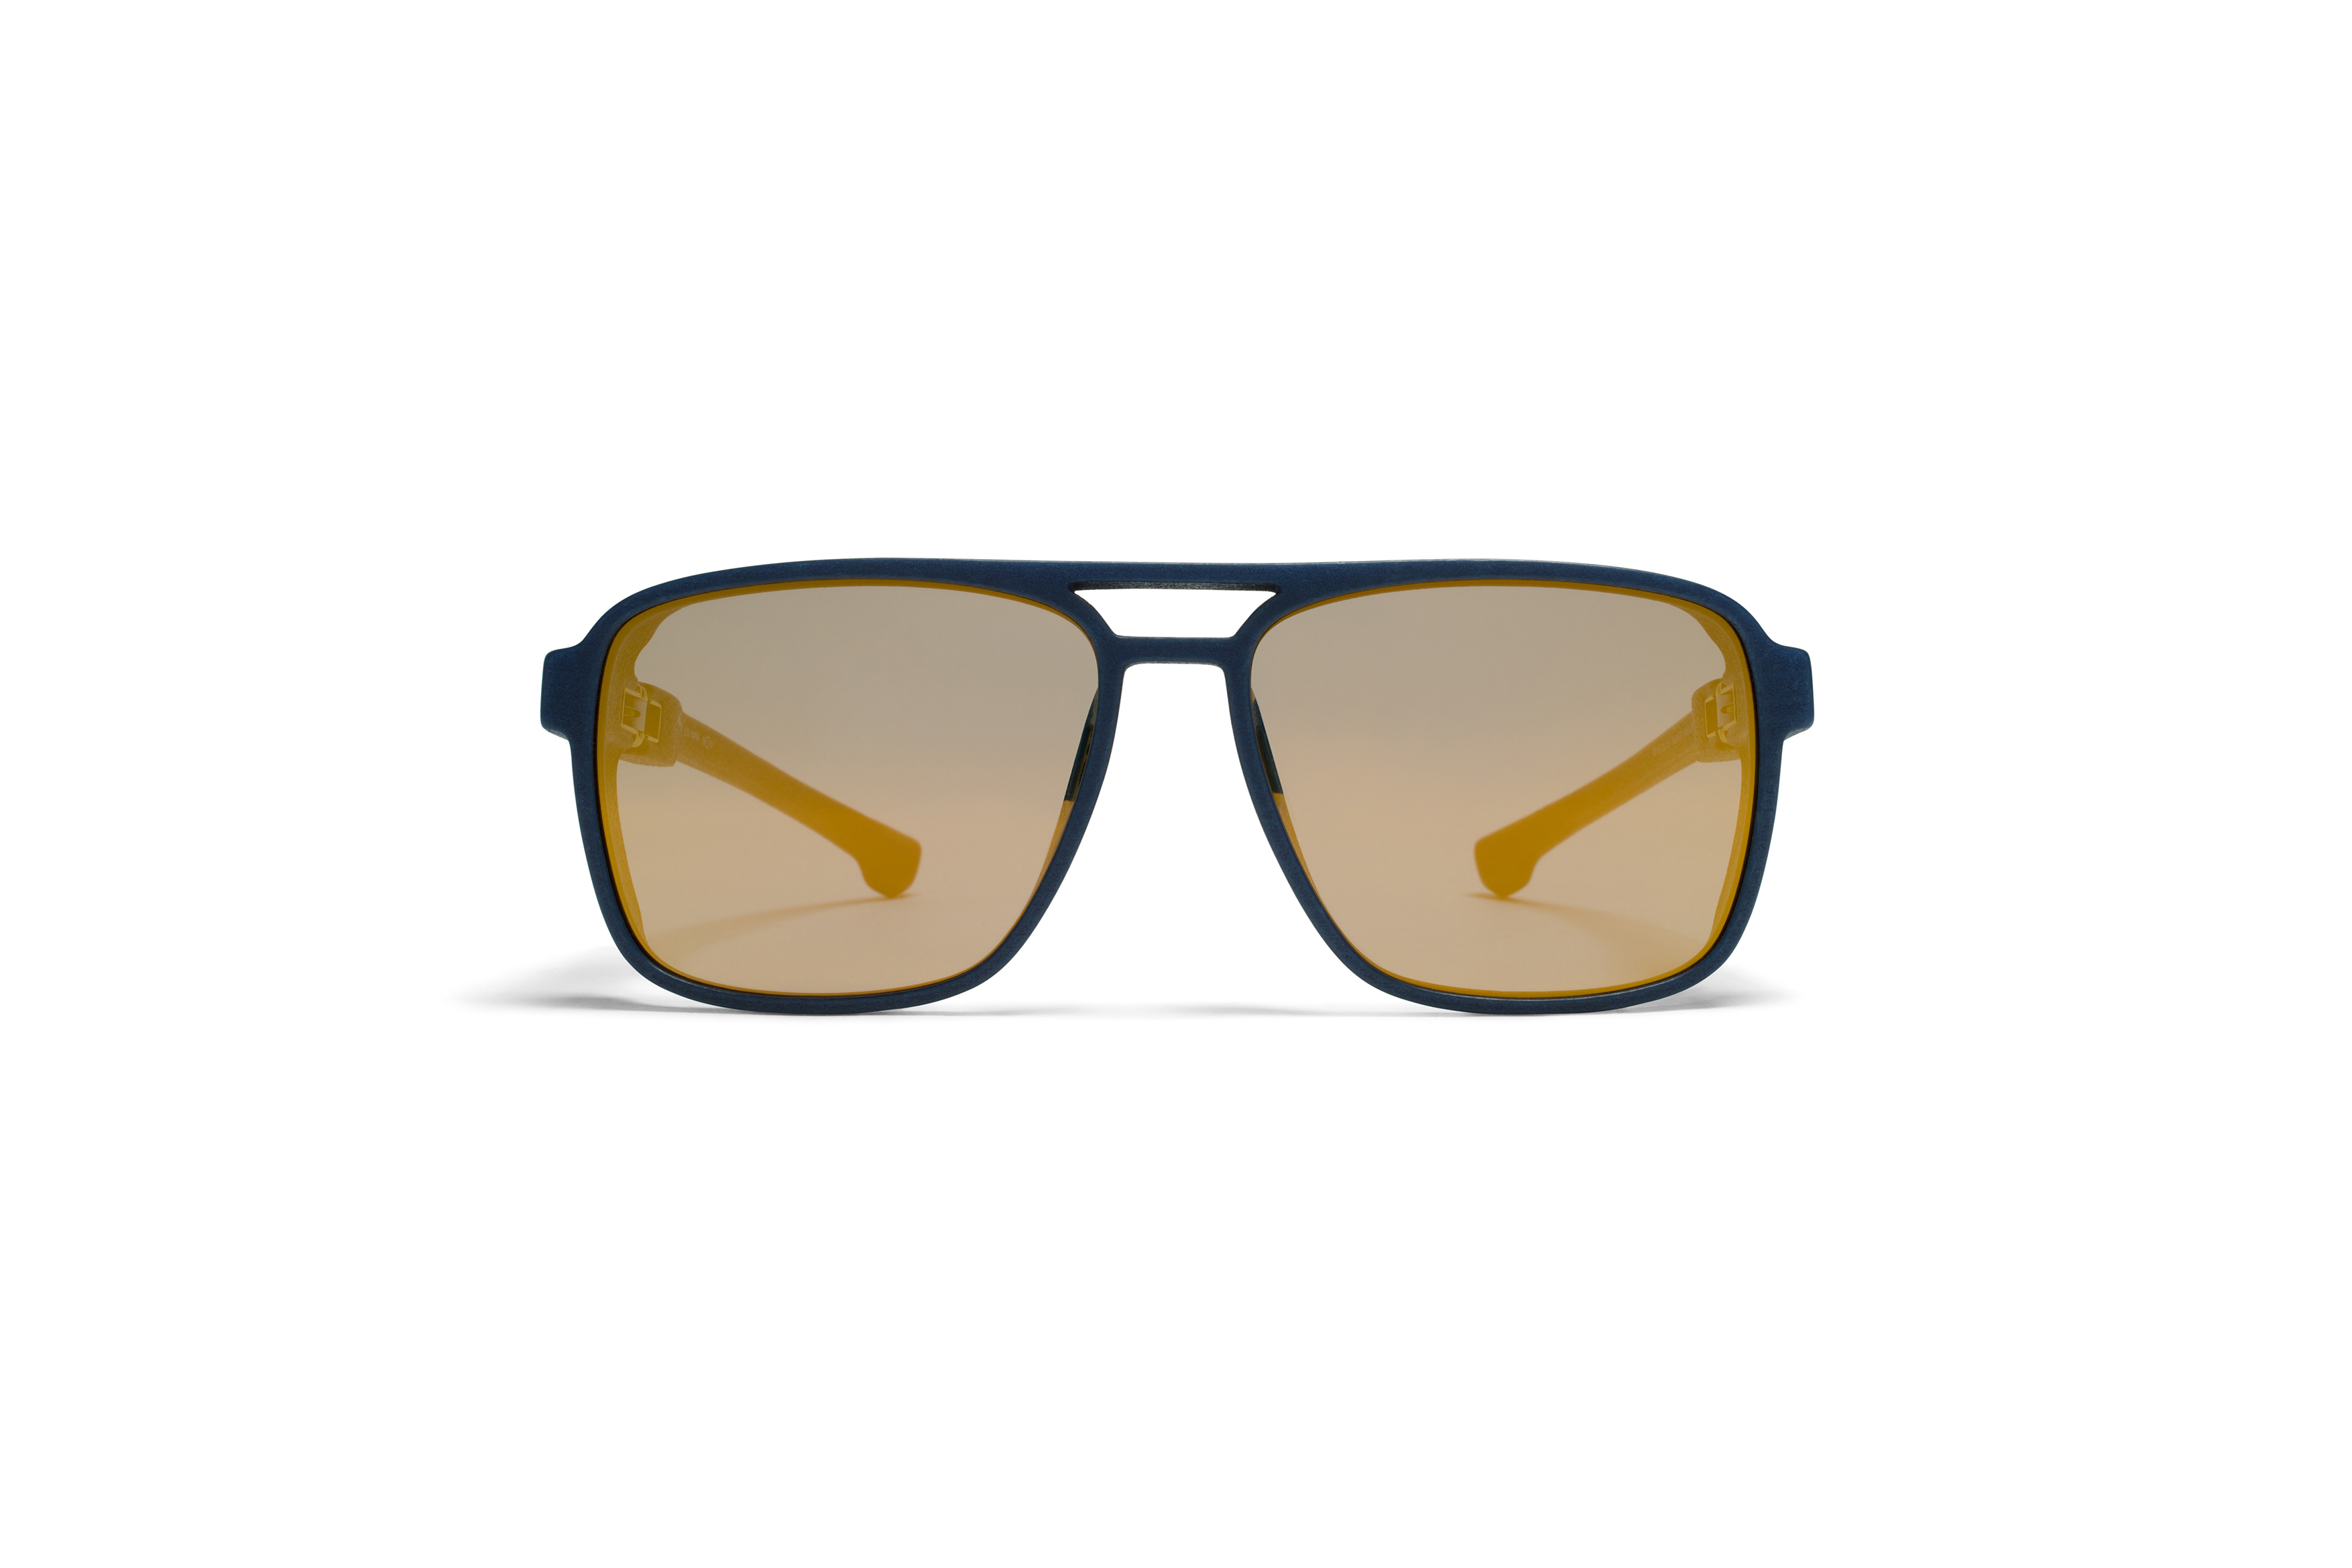 8e4741b64933 MYKITA - UNFORTUNATELY THIS PRODUCT IS NO LONGER AVAILABLE